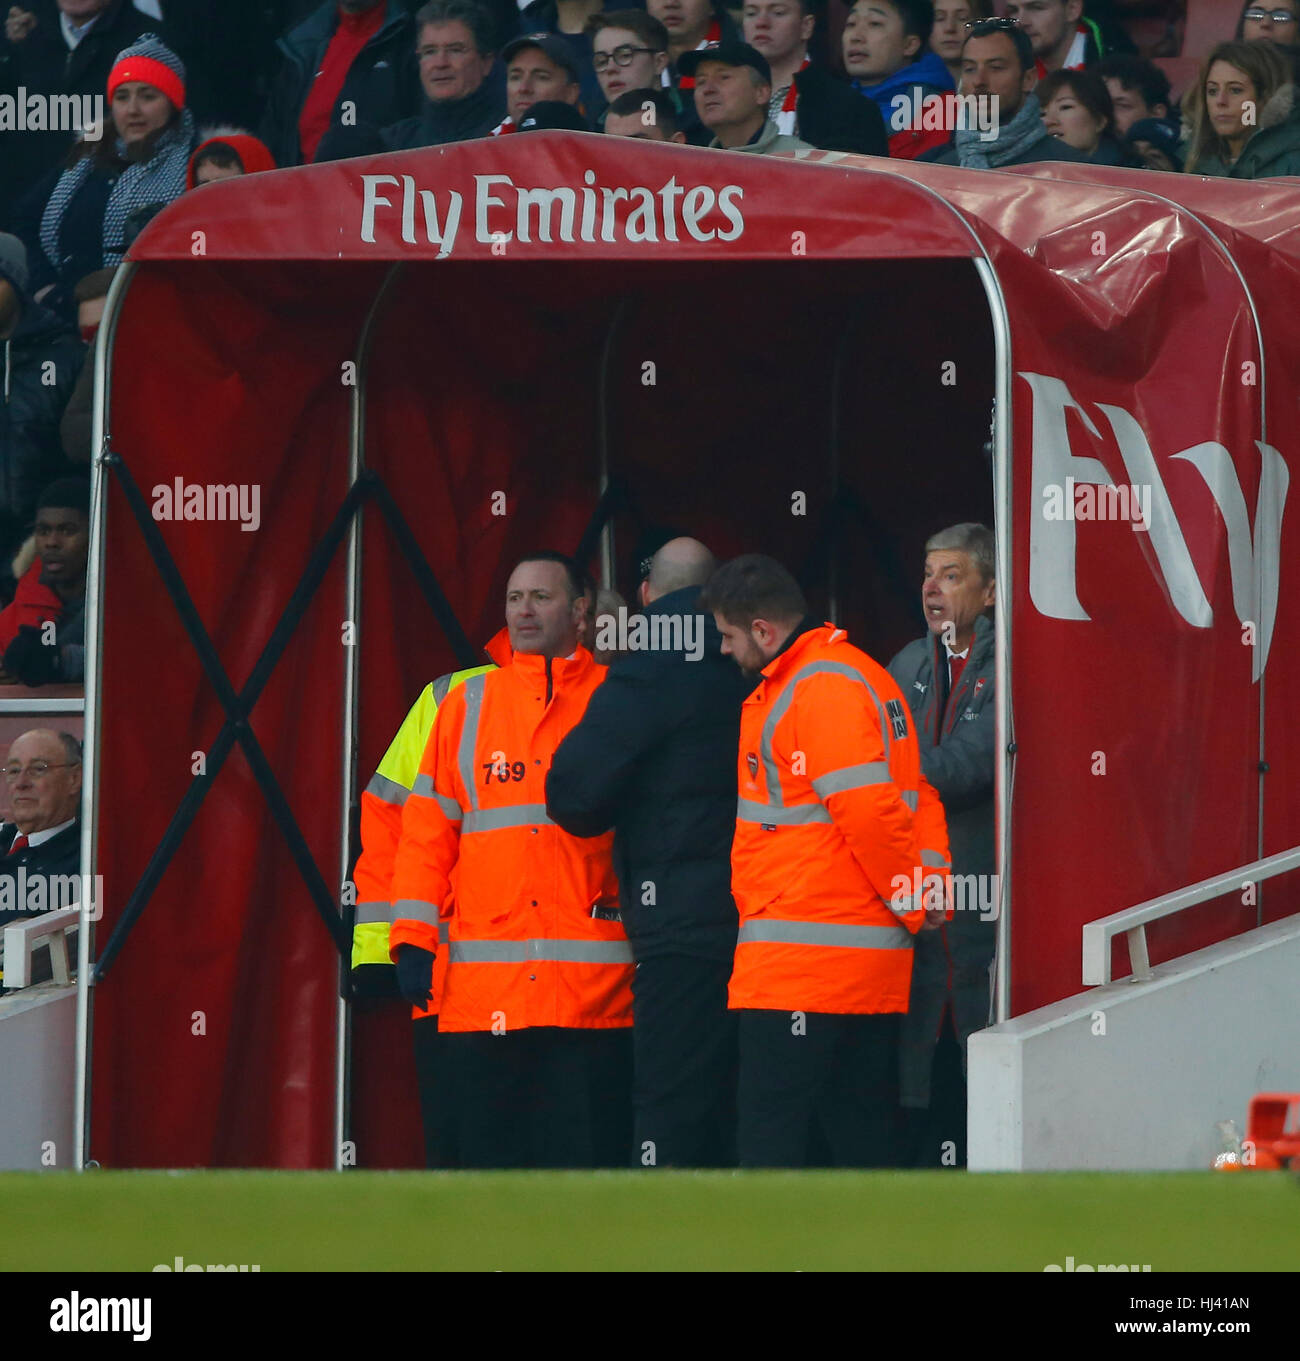 Arsenal's Manager Arsene Wenger remonstrates with an official after being sent to the stand during the Premier League - Stock Image